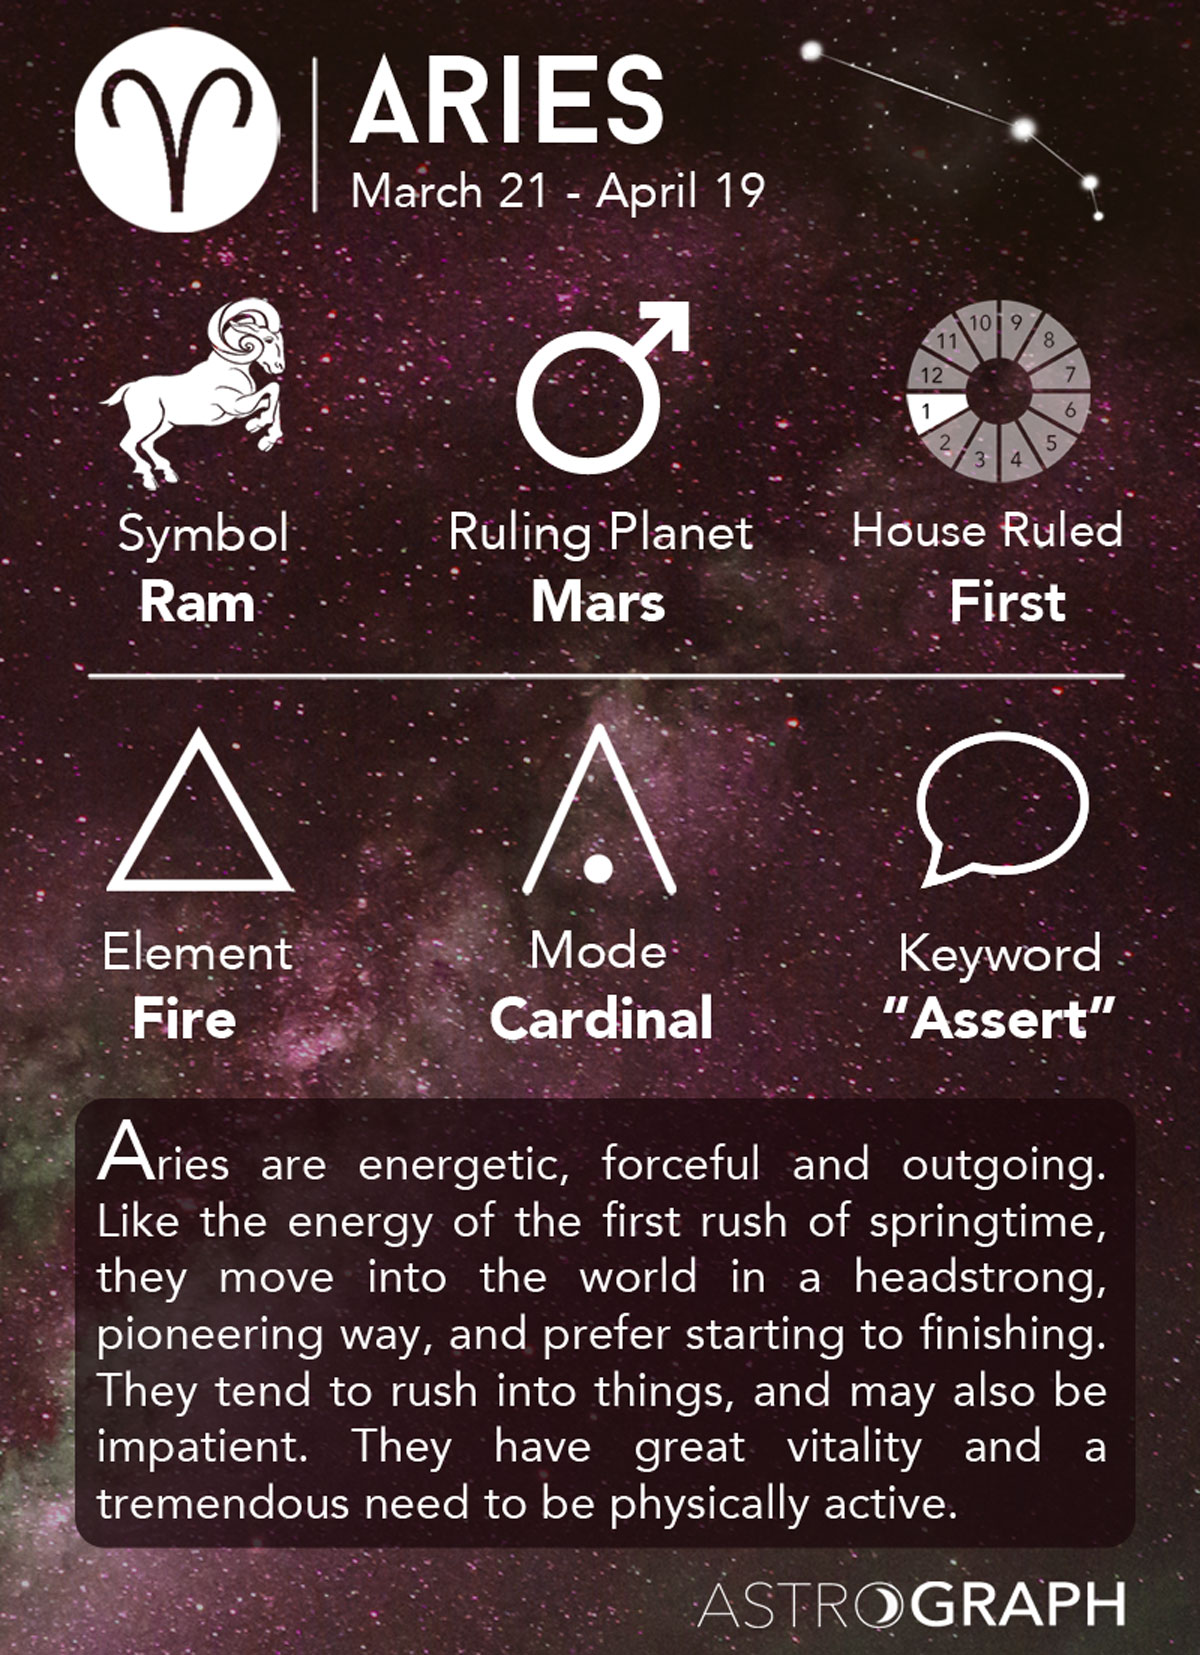 detail about aries horoscope